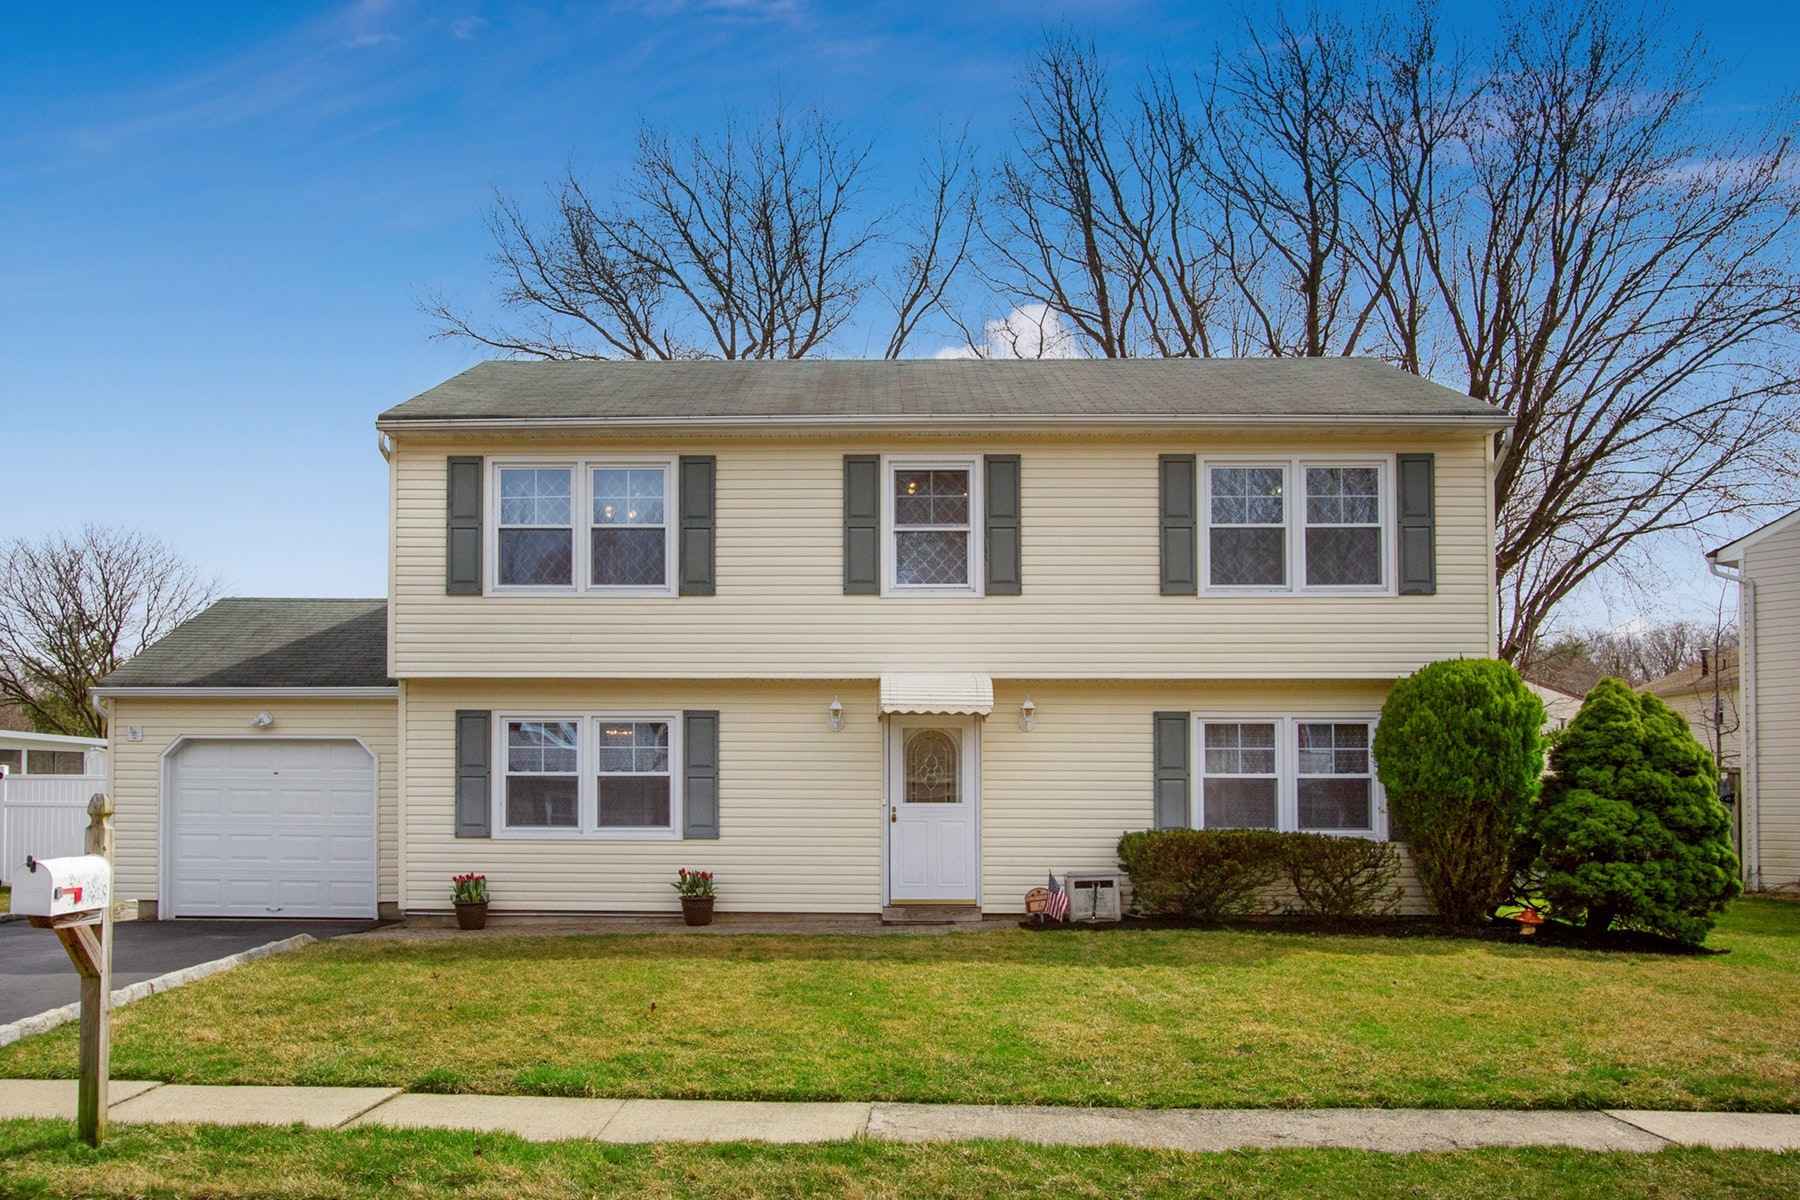 Single Family Home for Sale at Make this space your HOME! 6 Angela Circle, Hazlet, New Jersey 07730 United States